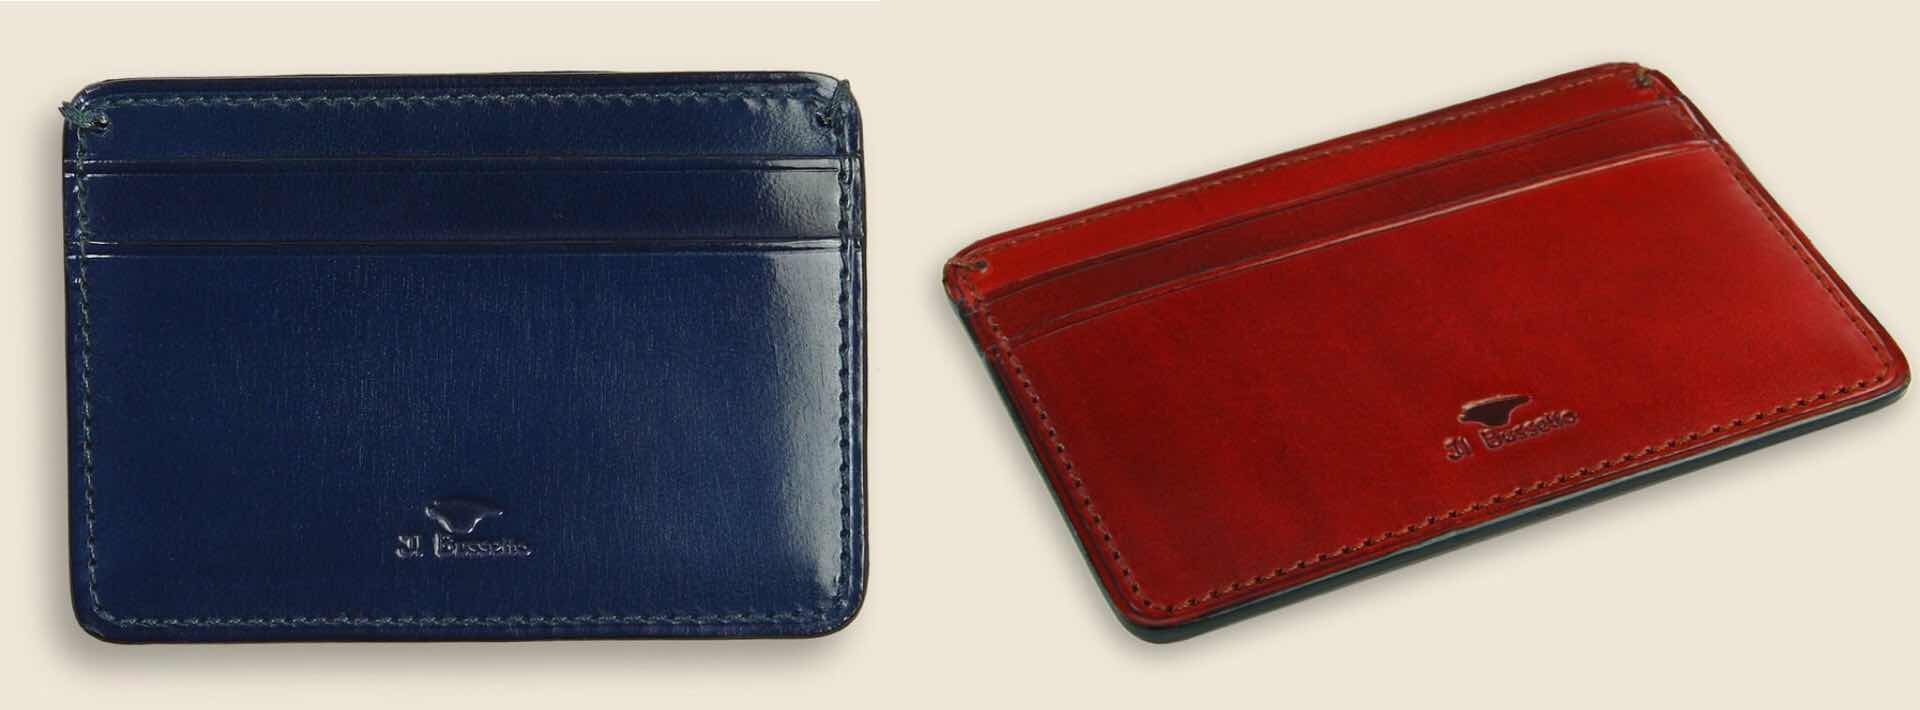 Il Bussetto Credit Card Case. ($48)